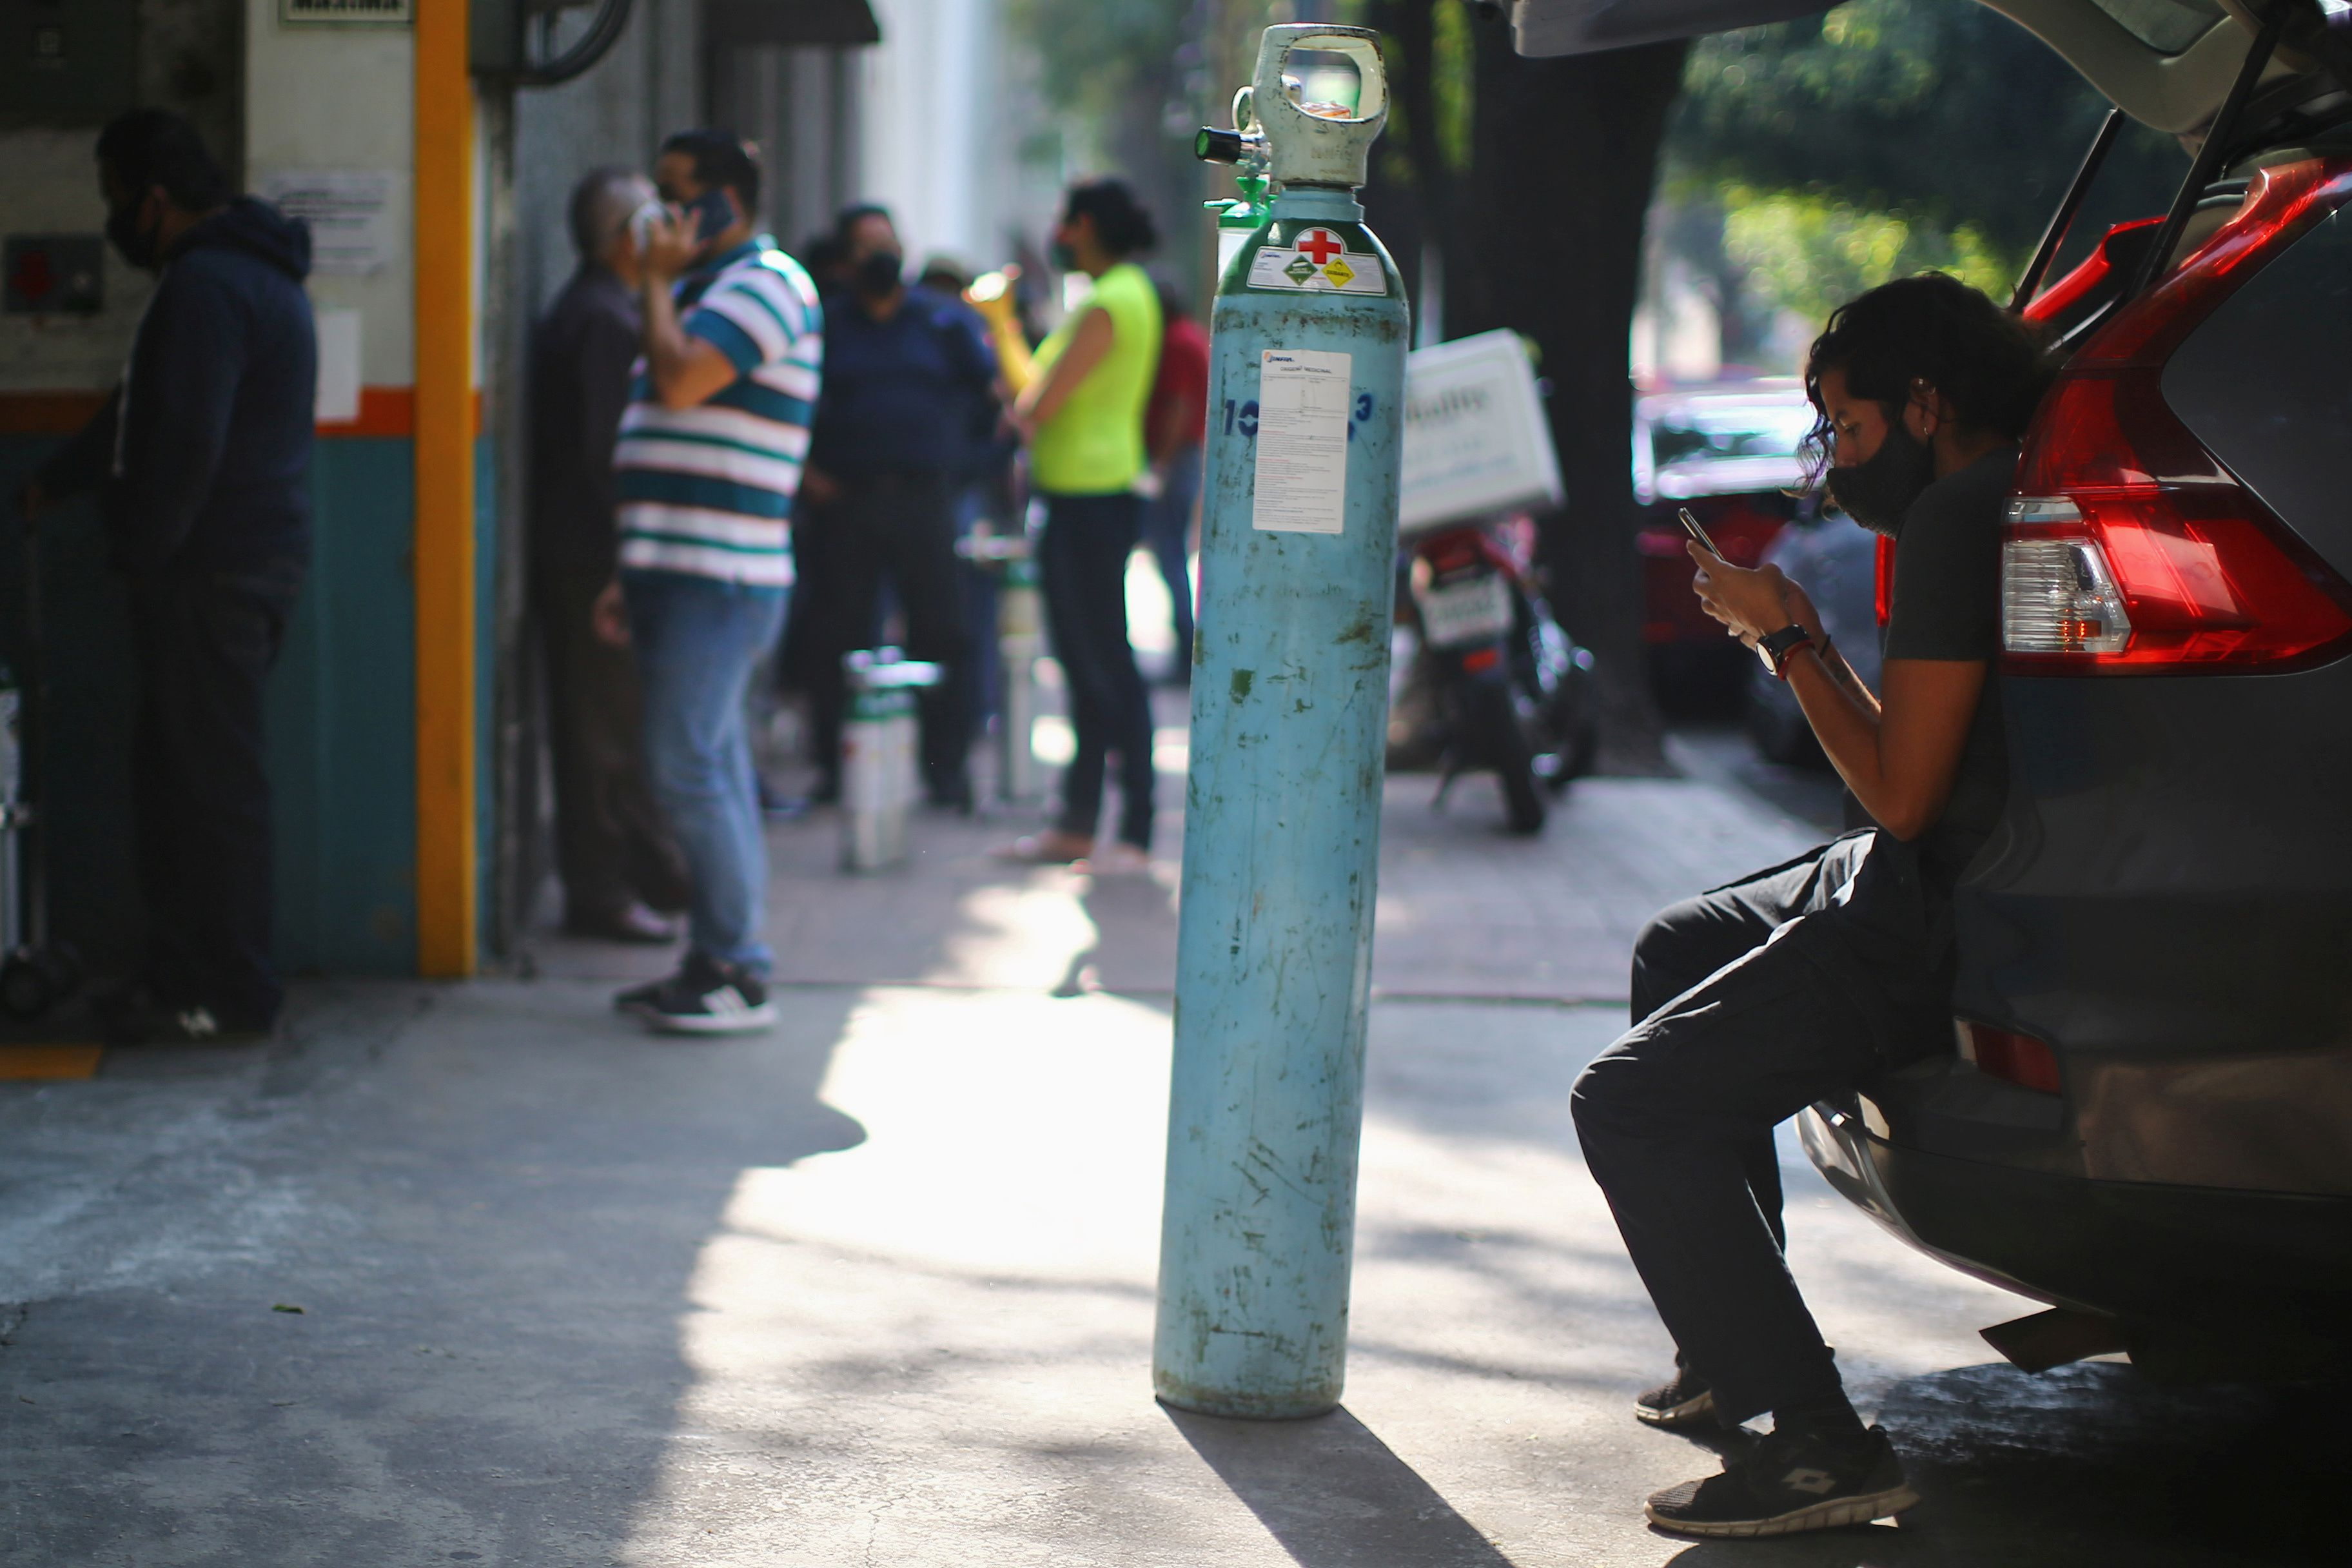 A man queues to fill an oxygen tank outside a medical supply store in Mexico City, December 21, 2020.